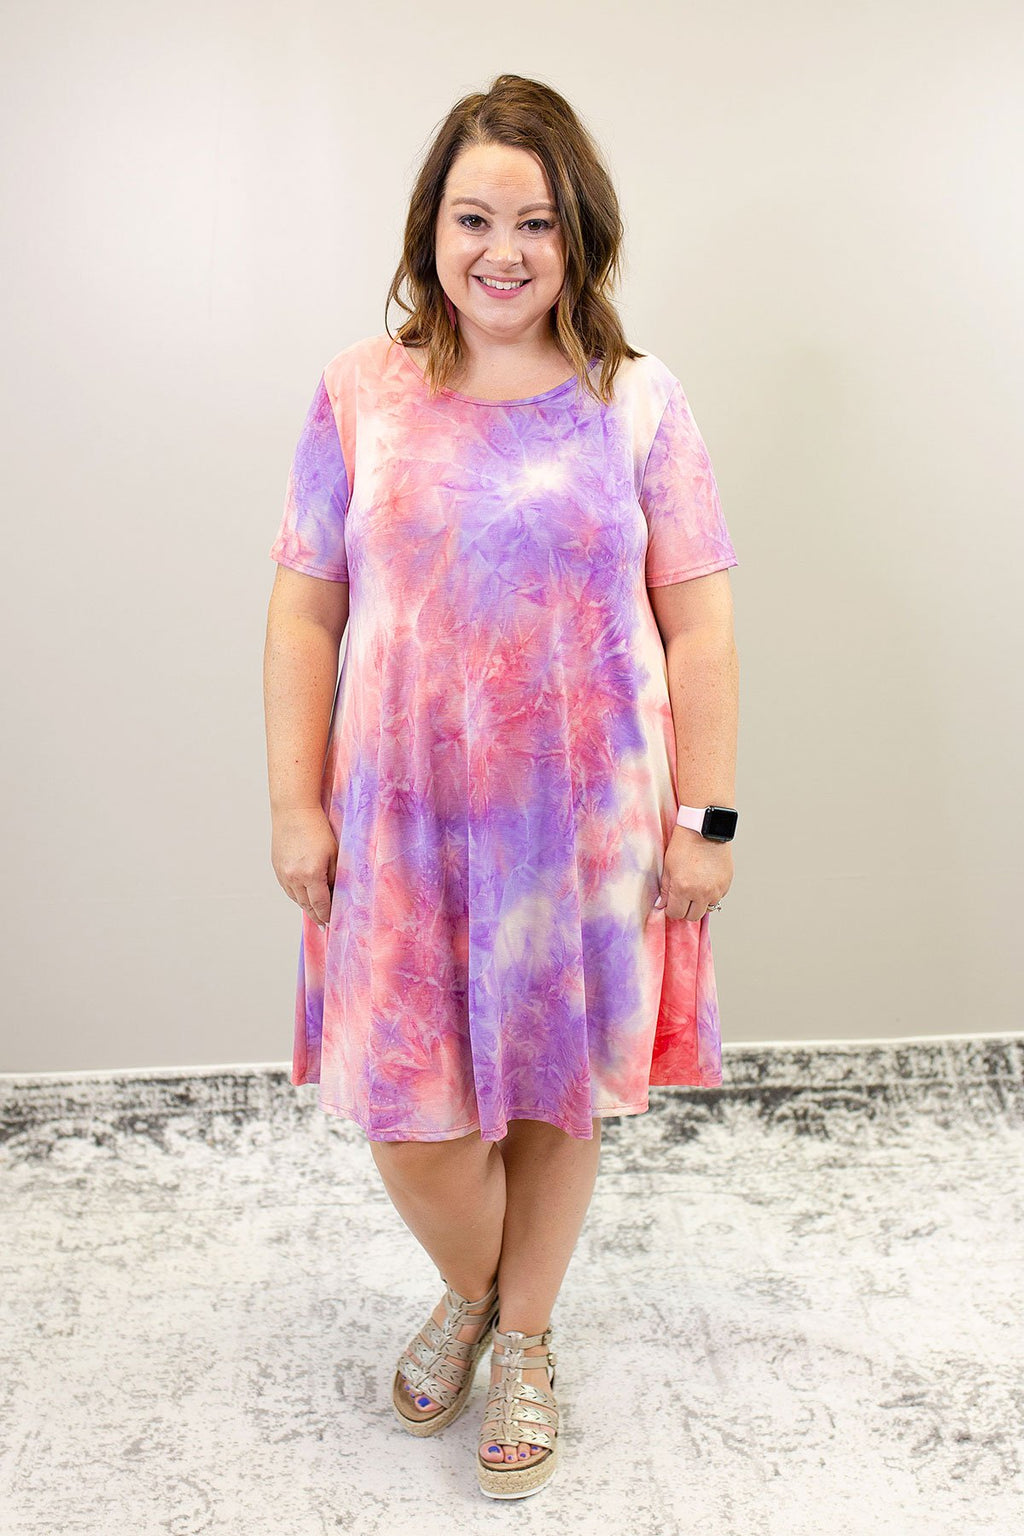 Candy Swirl Tie Dye Dress - Amaranth Collection